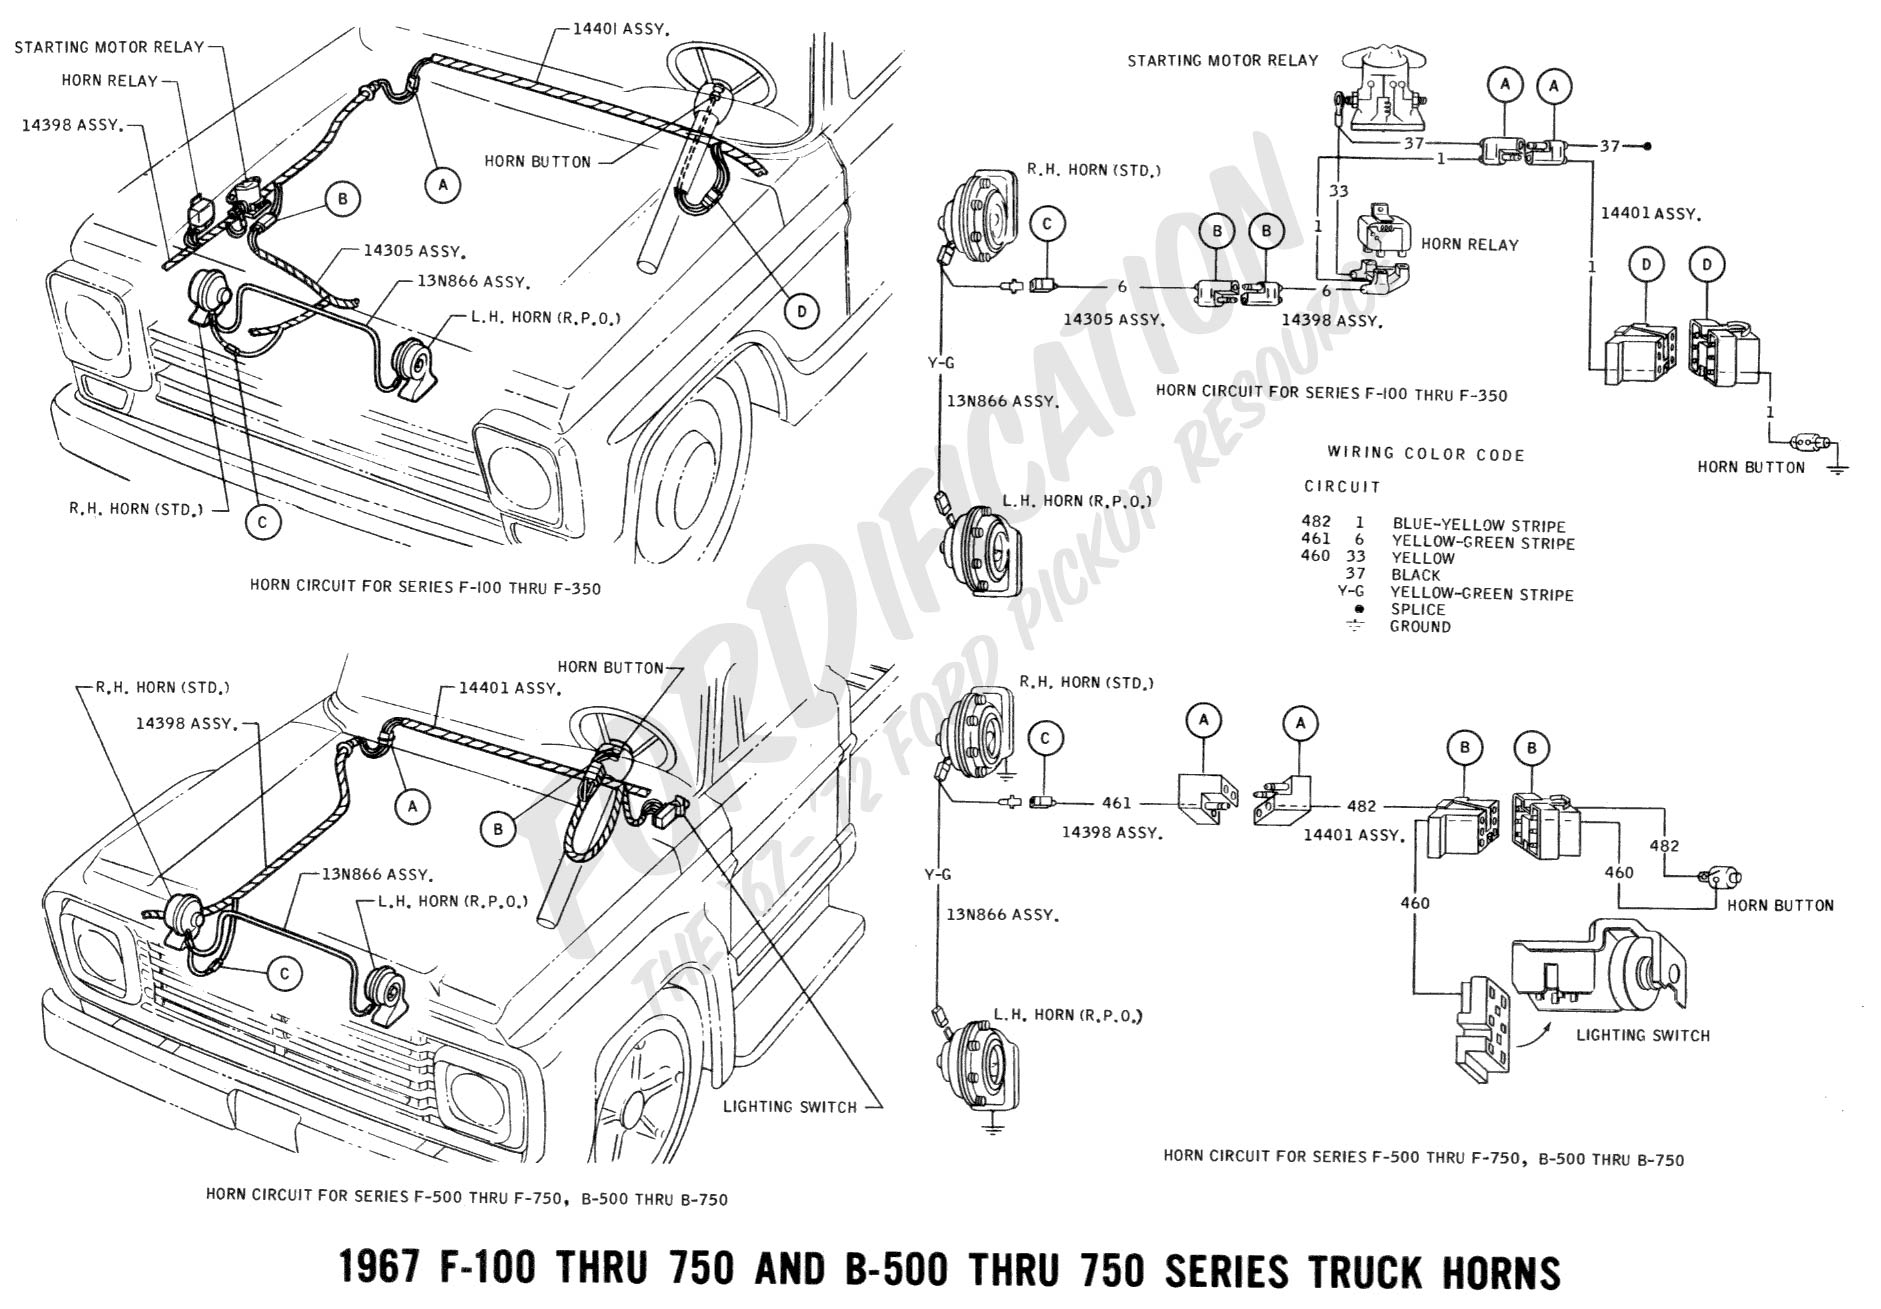 hight resolution of wiring diagram for 1968 ford f100 pick up simple wiring schema ford truck technical drawings and schematics section h wiring